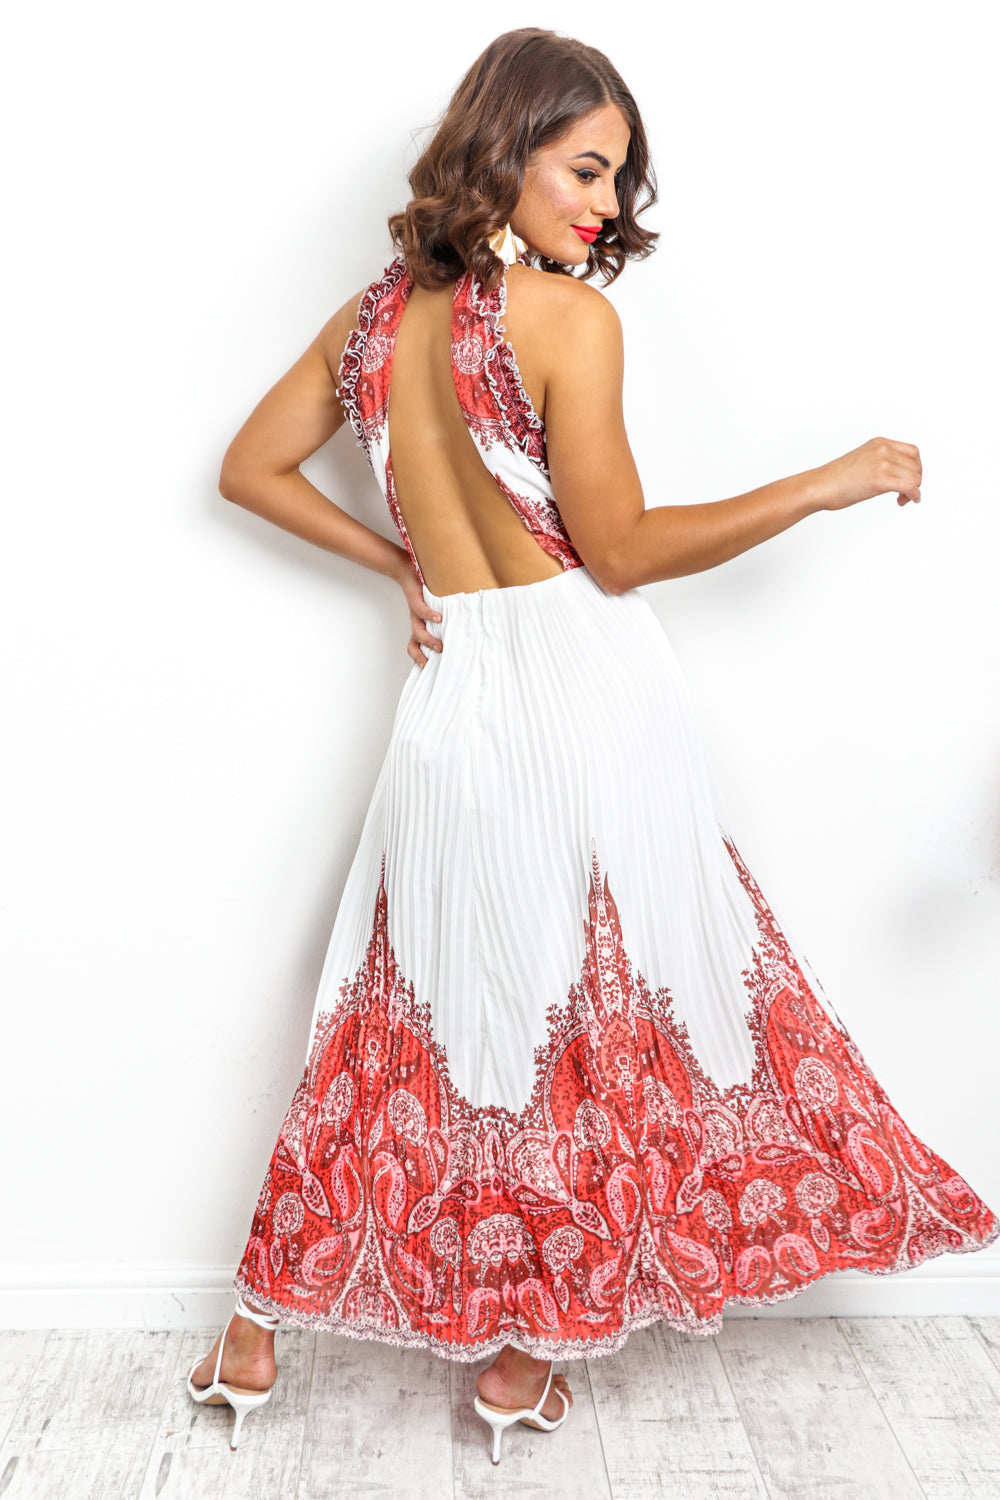 Meet Me At The Halter - Dress In WHITE/RED